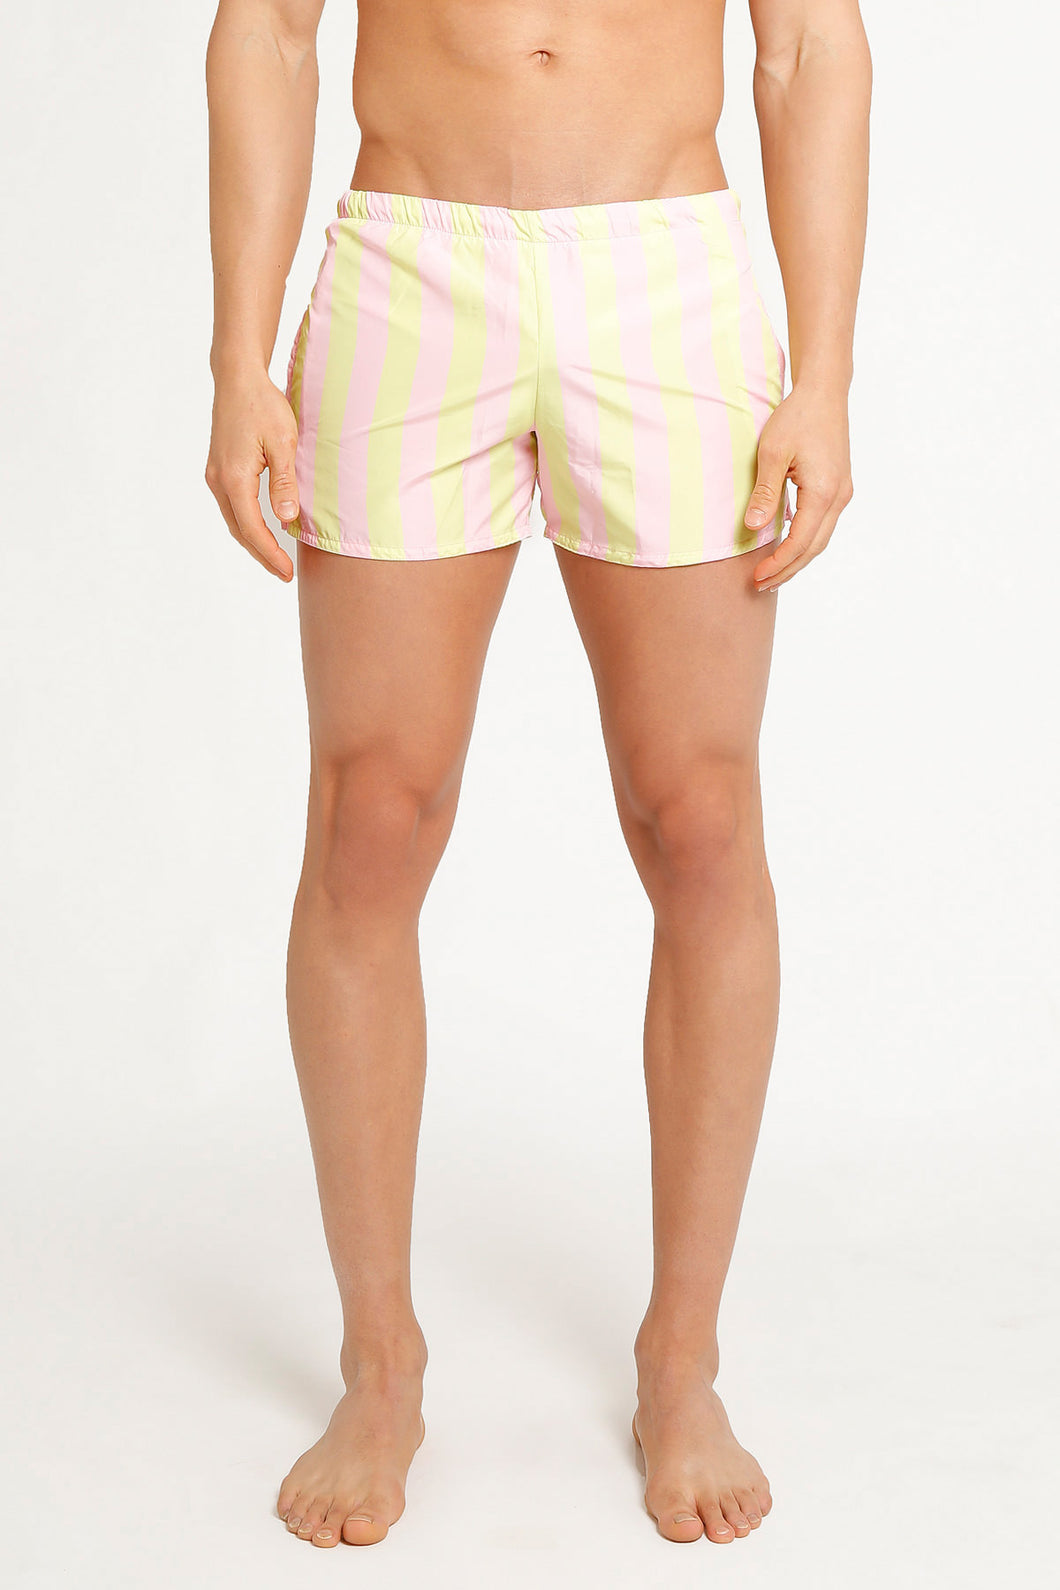 SHORTS STRIPES PINK YELLOW